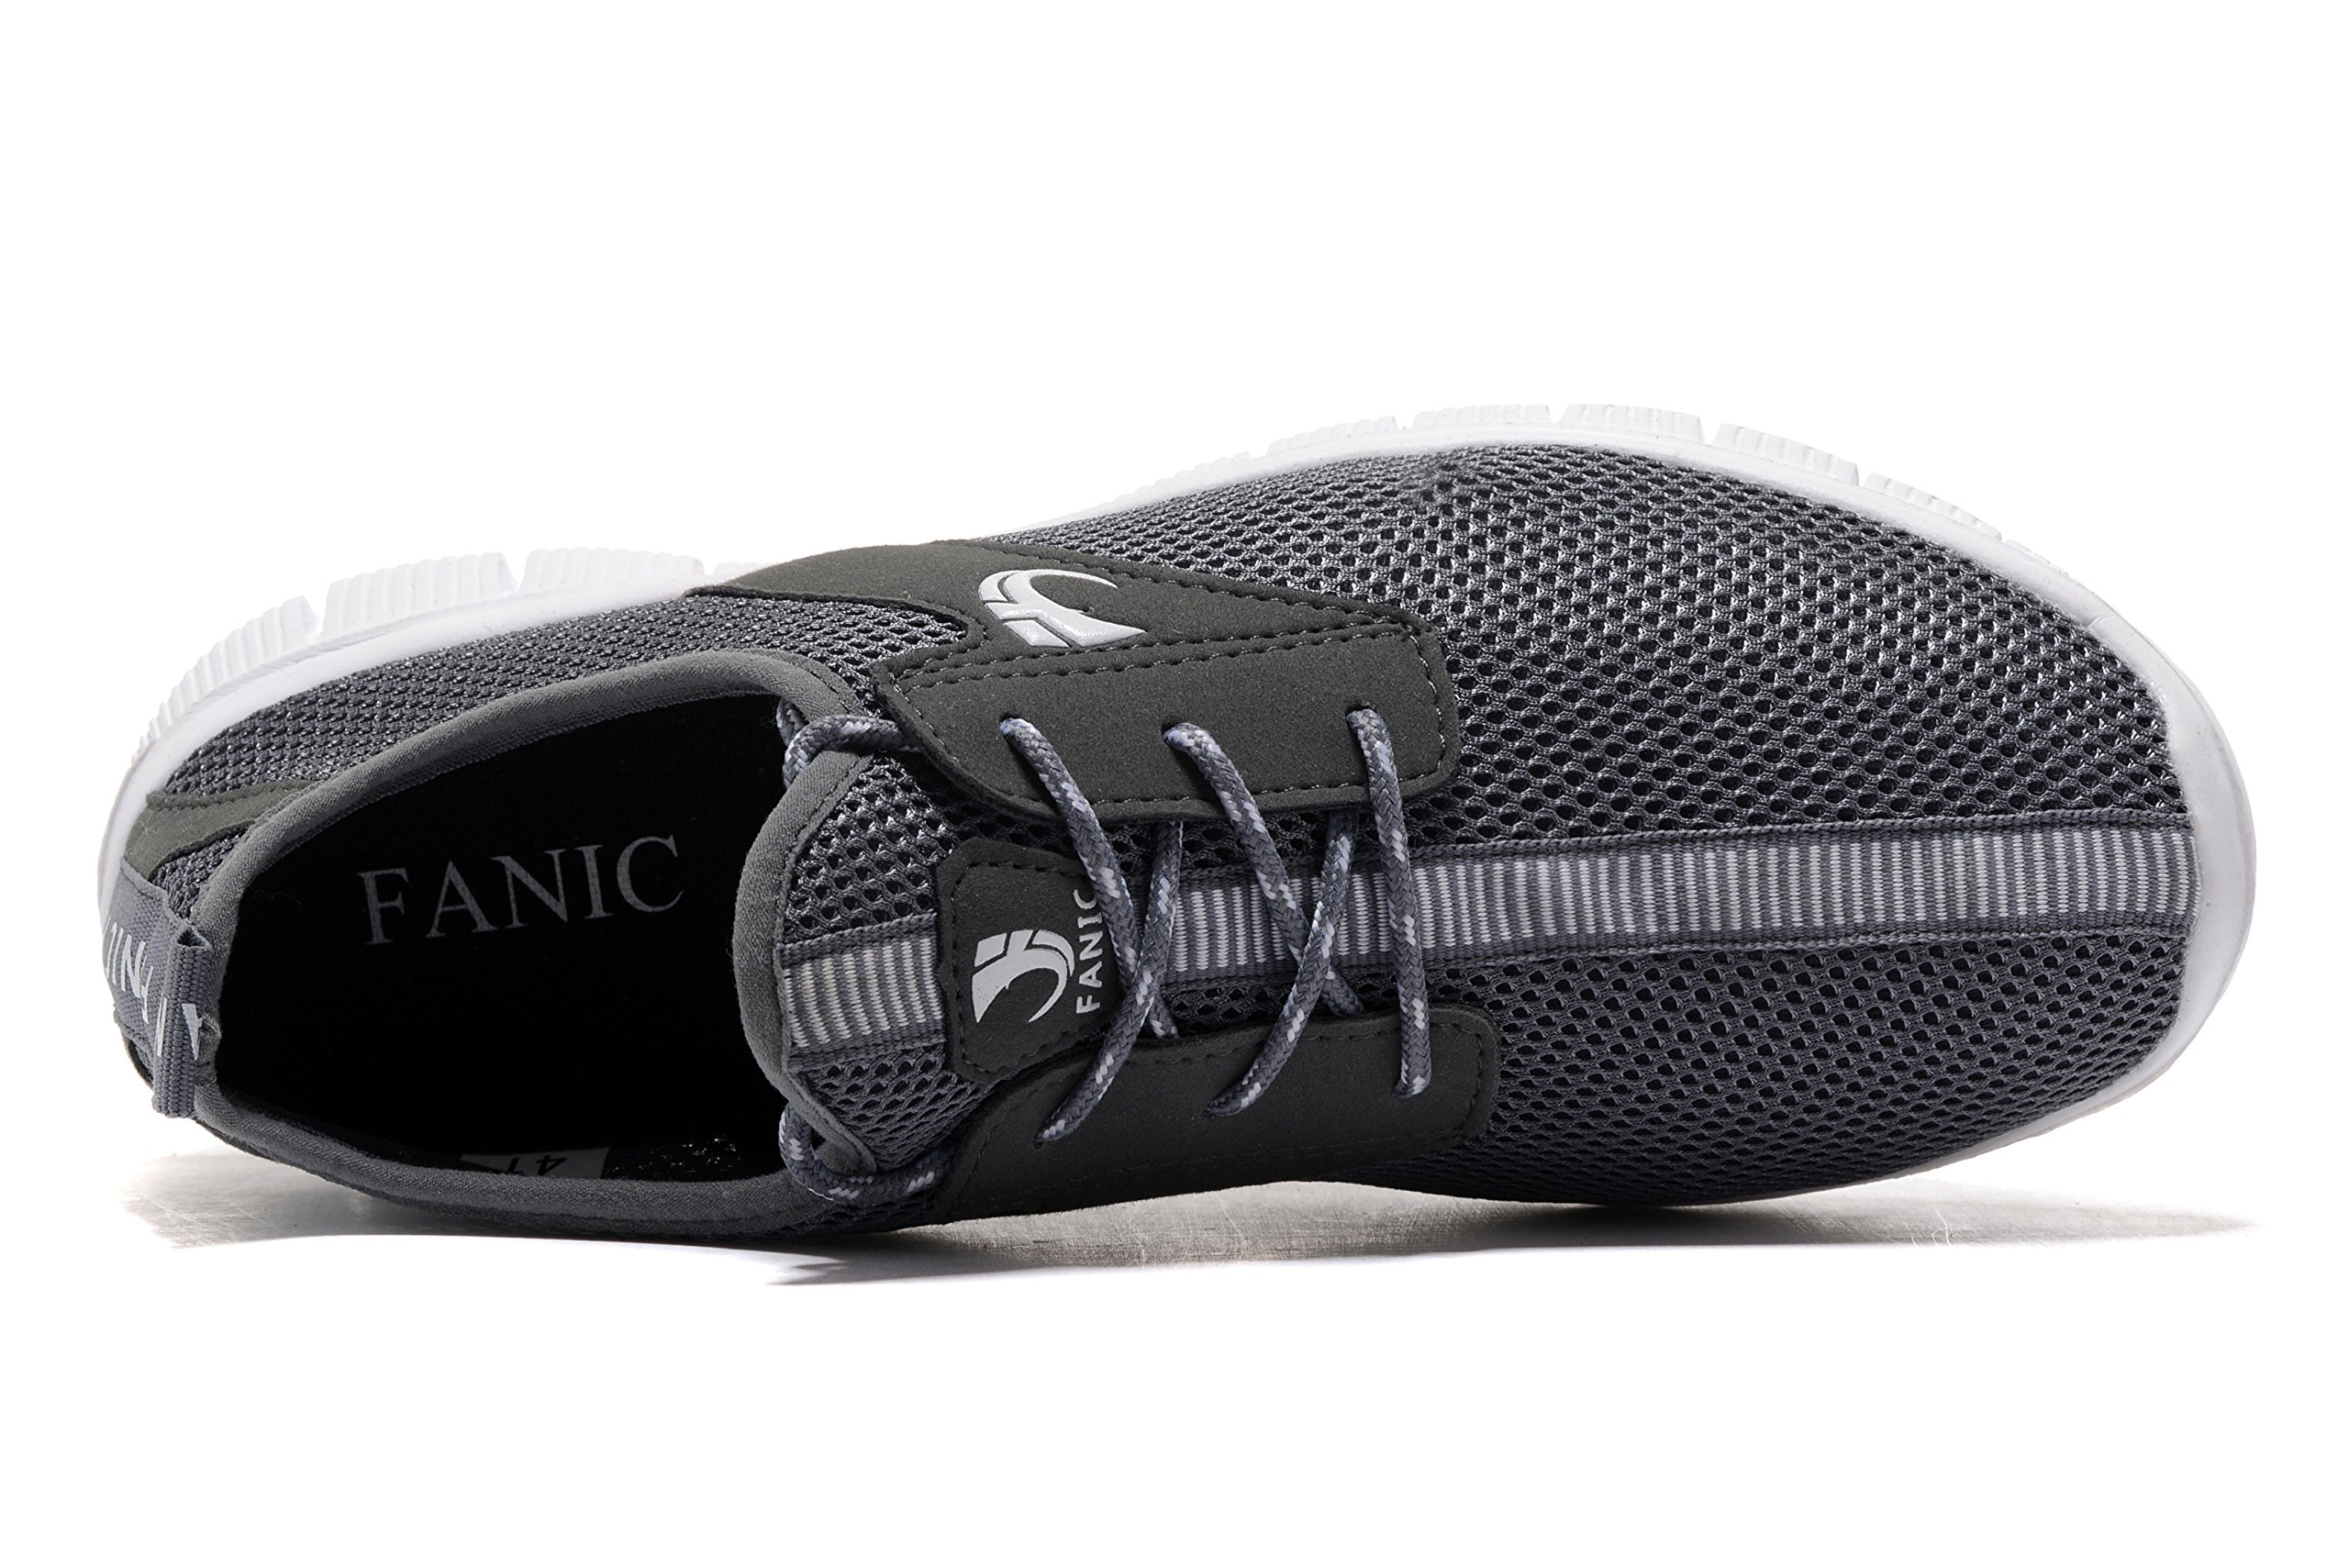 FANIC Men's Walking Shoes Workout Shoes Full Mesh Running Shoes Lightweight Comfortable Fitness Breathable Casual Sneaker (47 M EU / 12.5 D(M) US, Grey) by FANIC (Image #5)